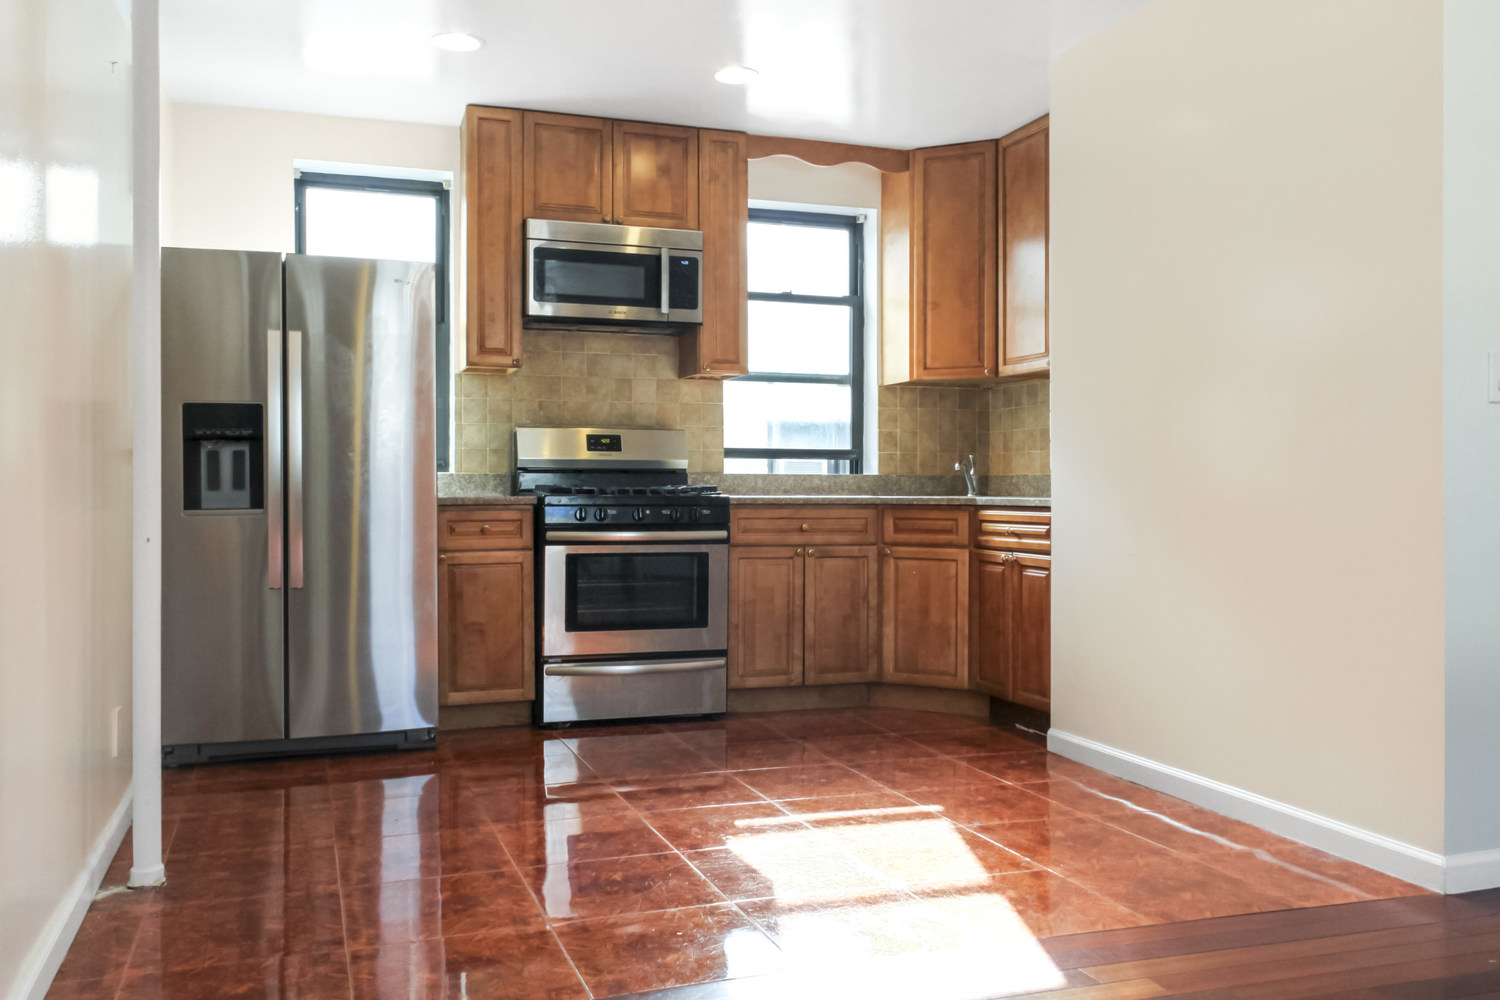 21-27 33rd Street, Unit 5G Queens, NY 11105